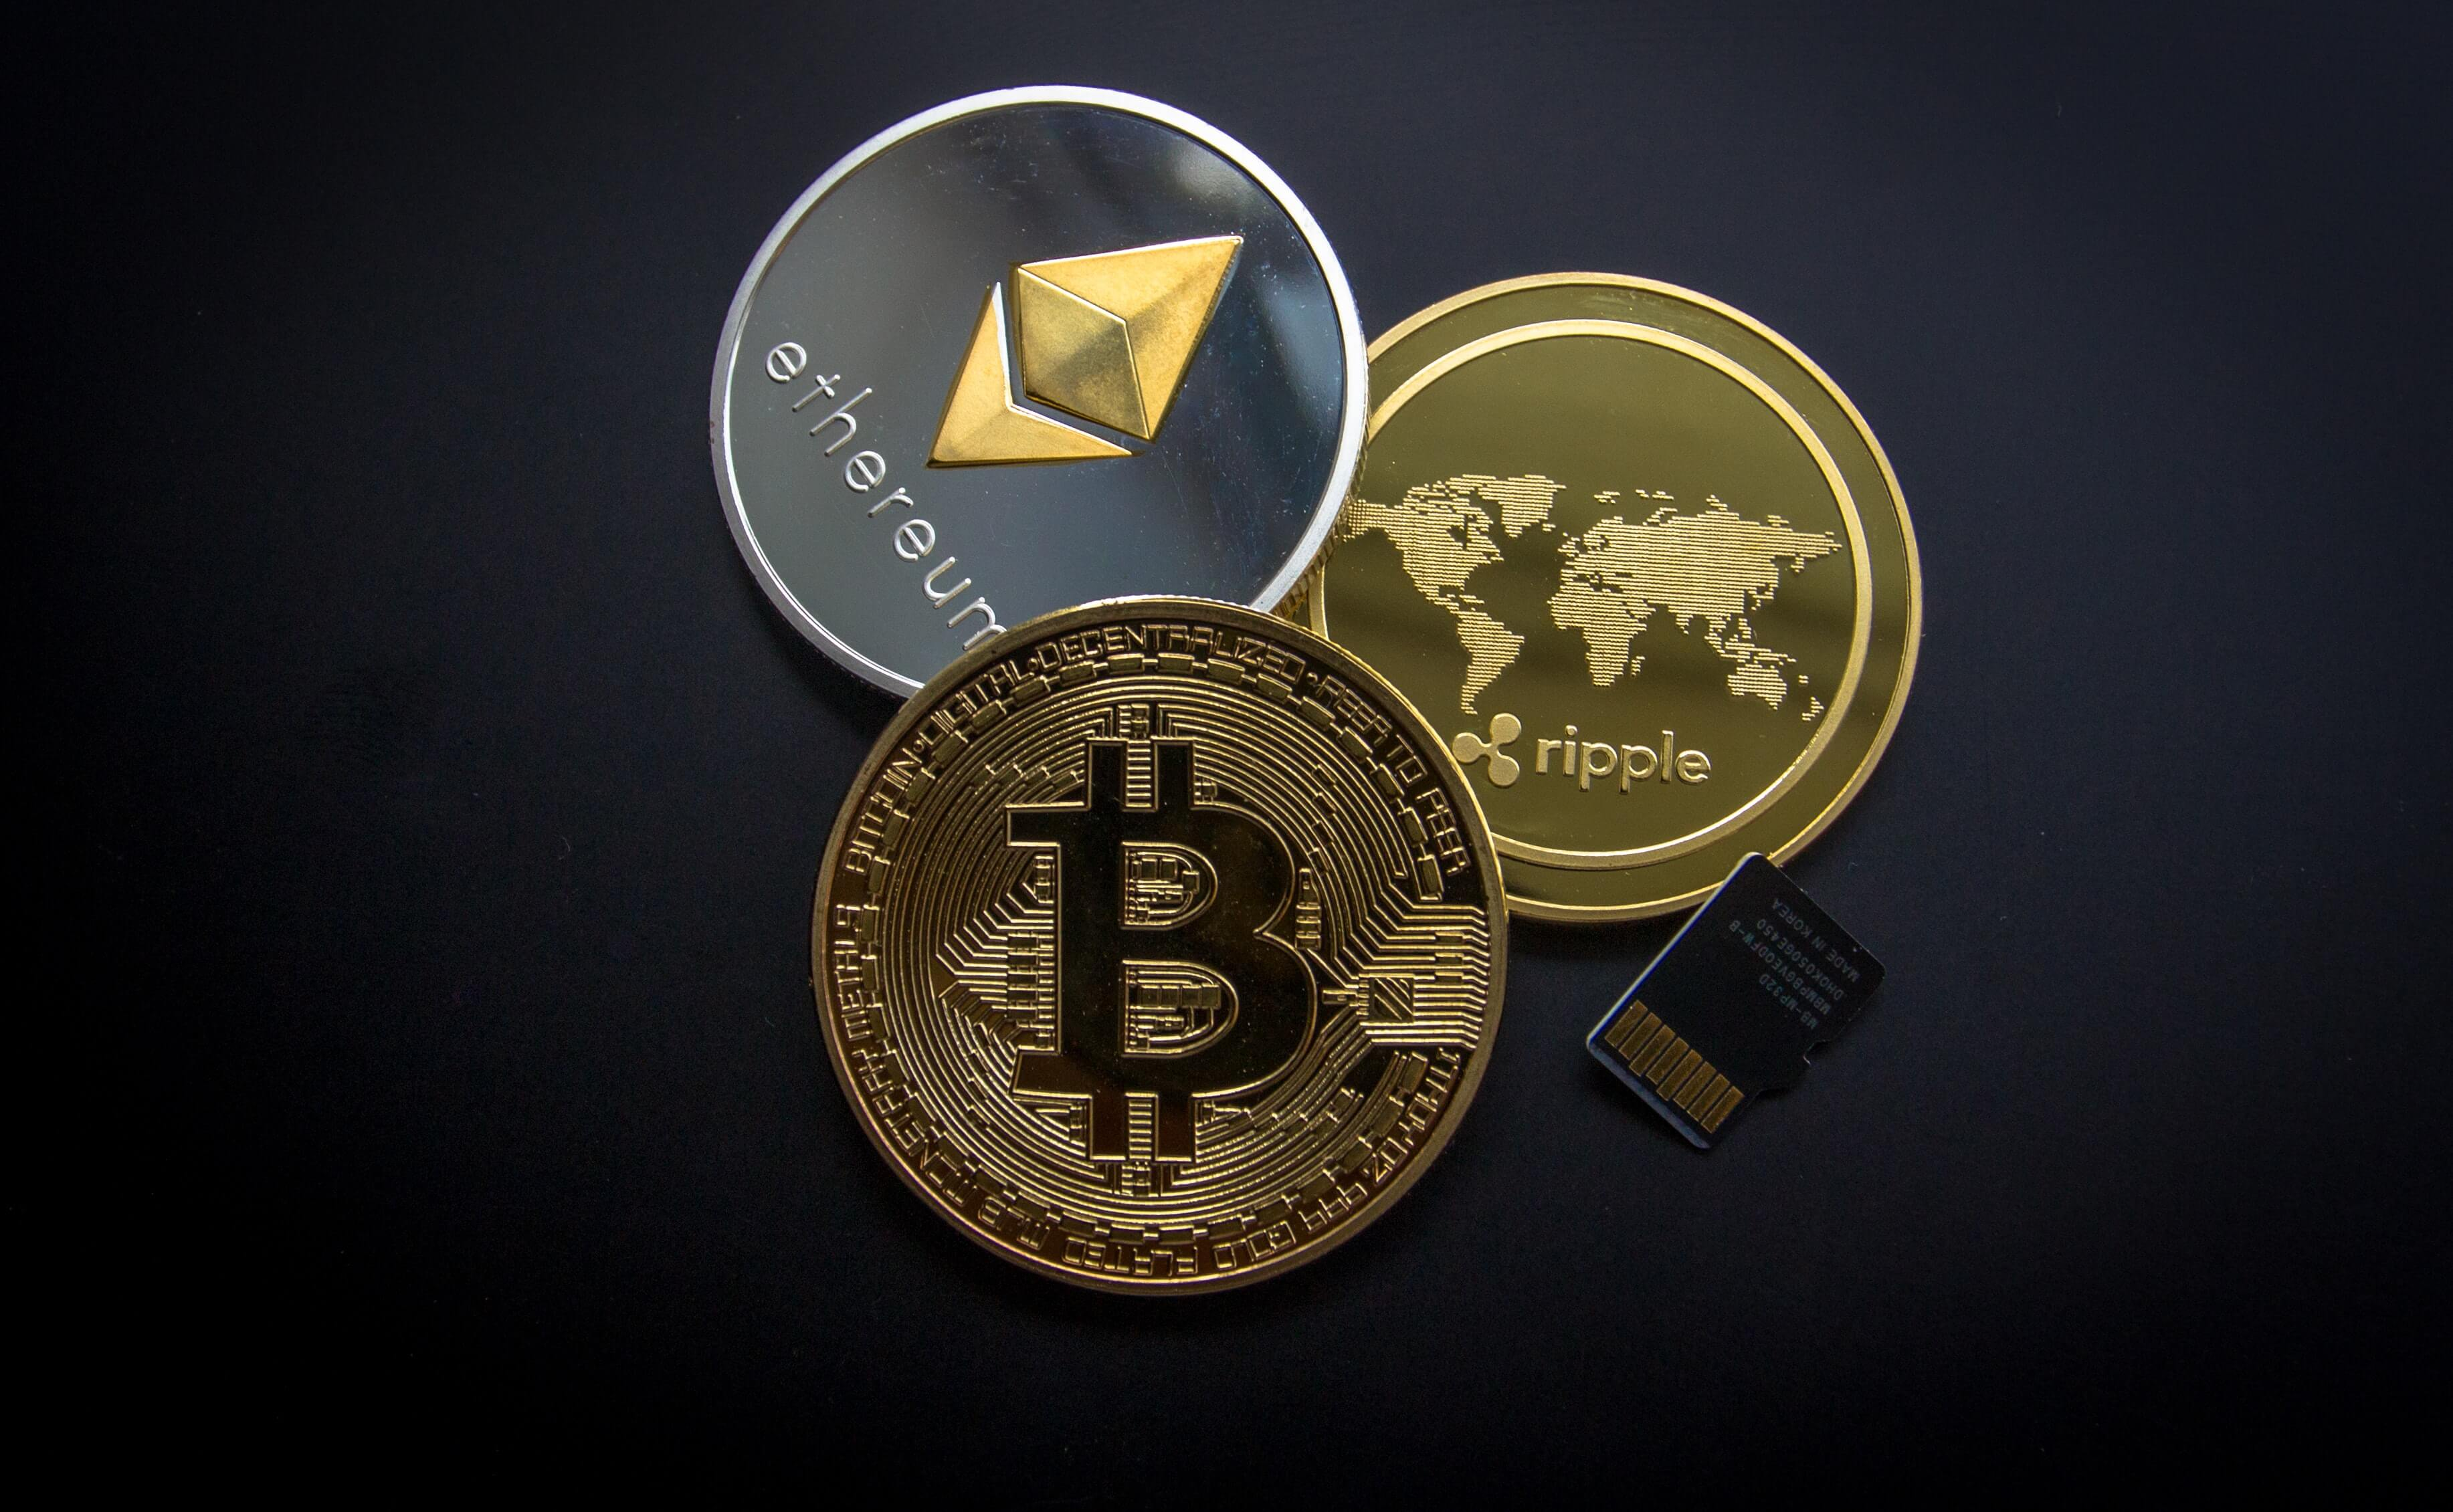 Cryptocurrency Bitcoin and other cryptos